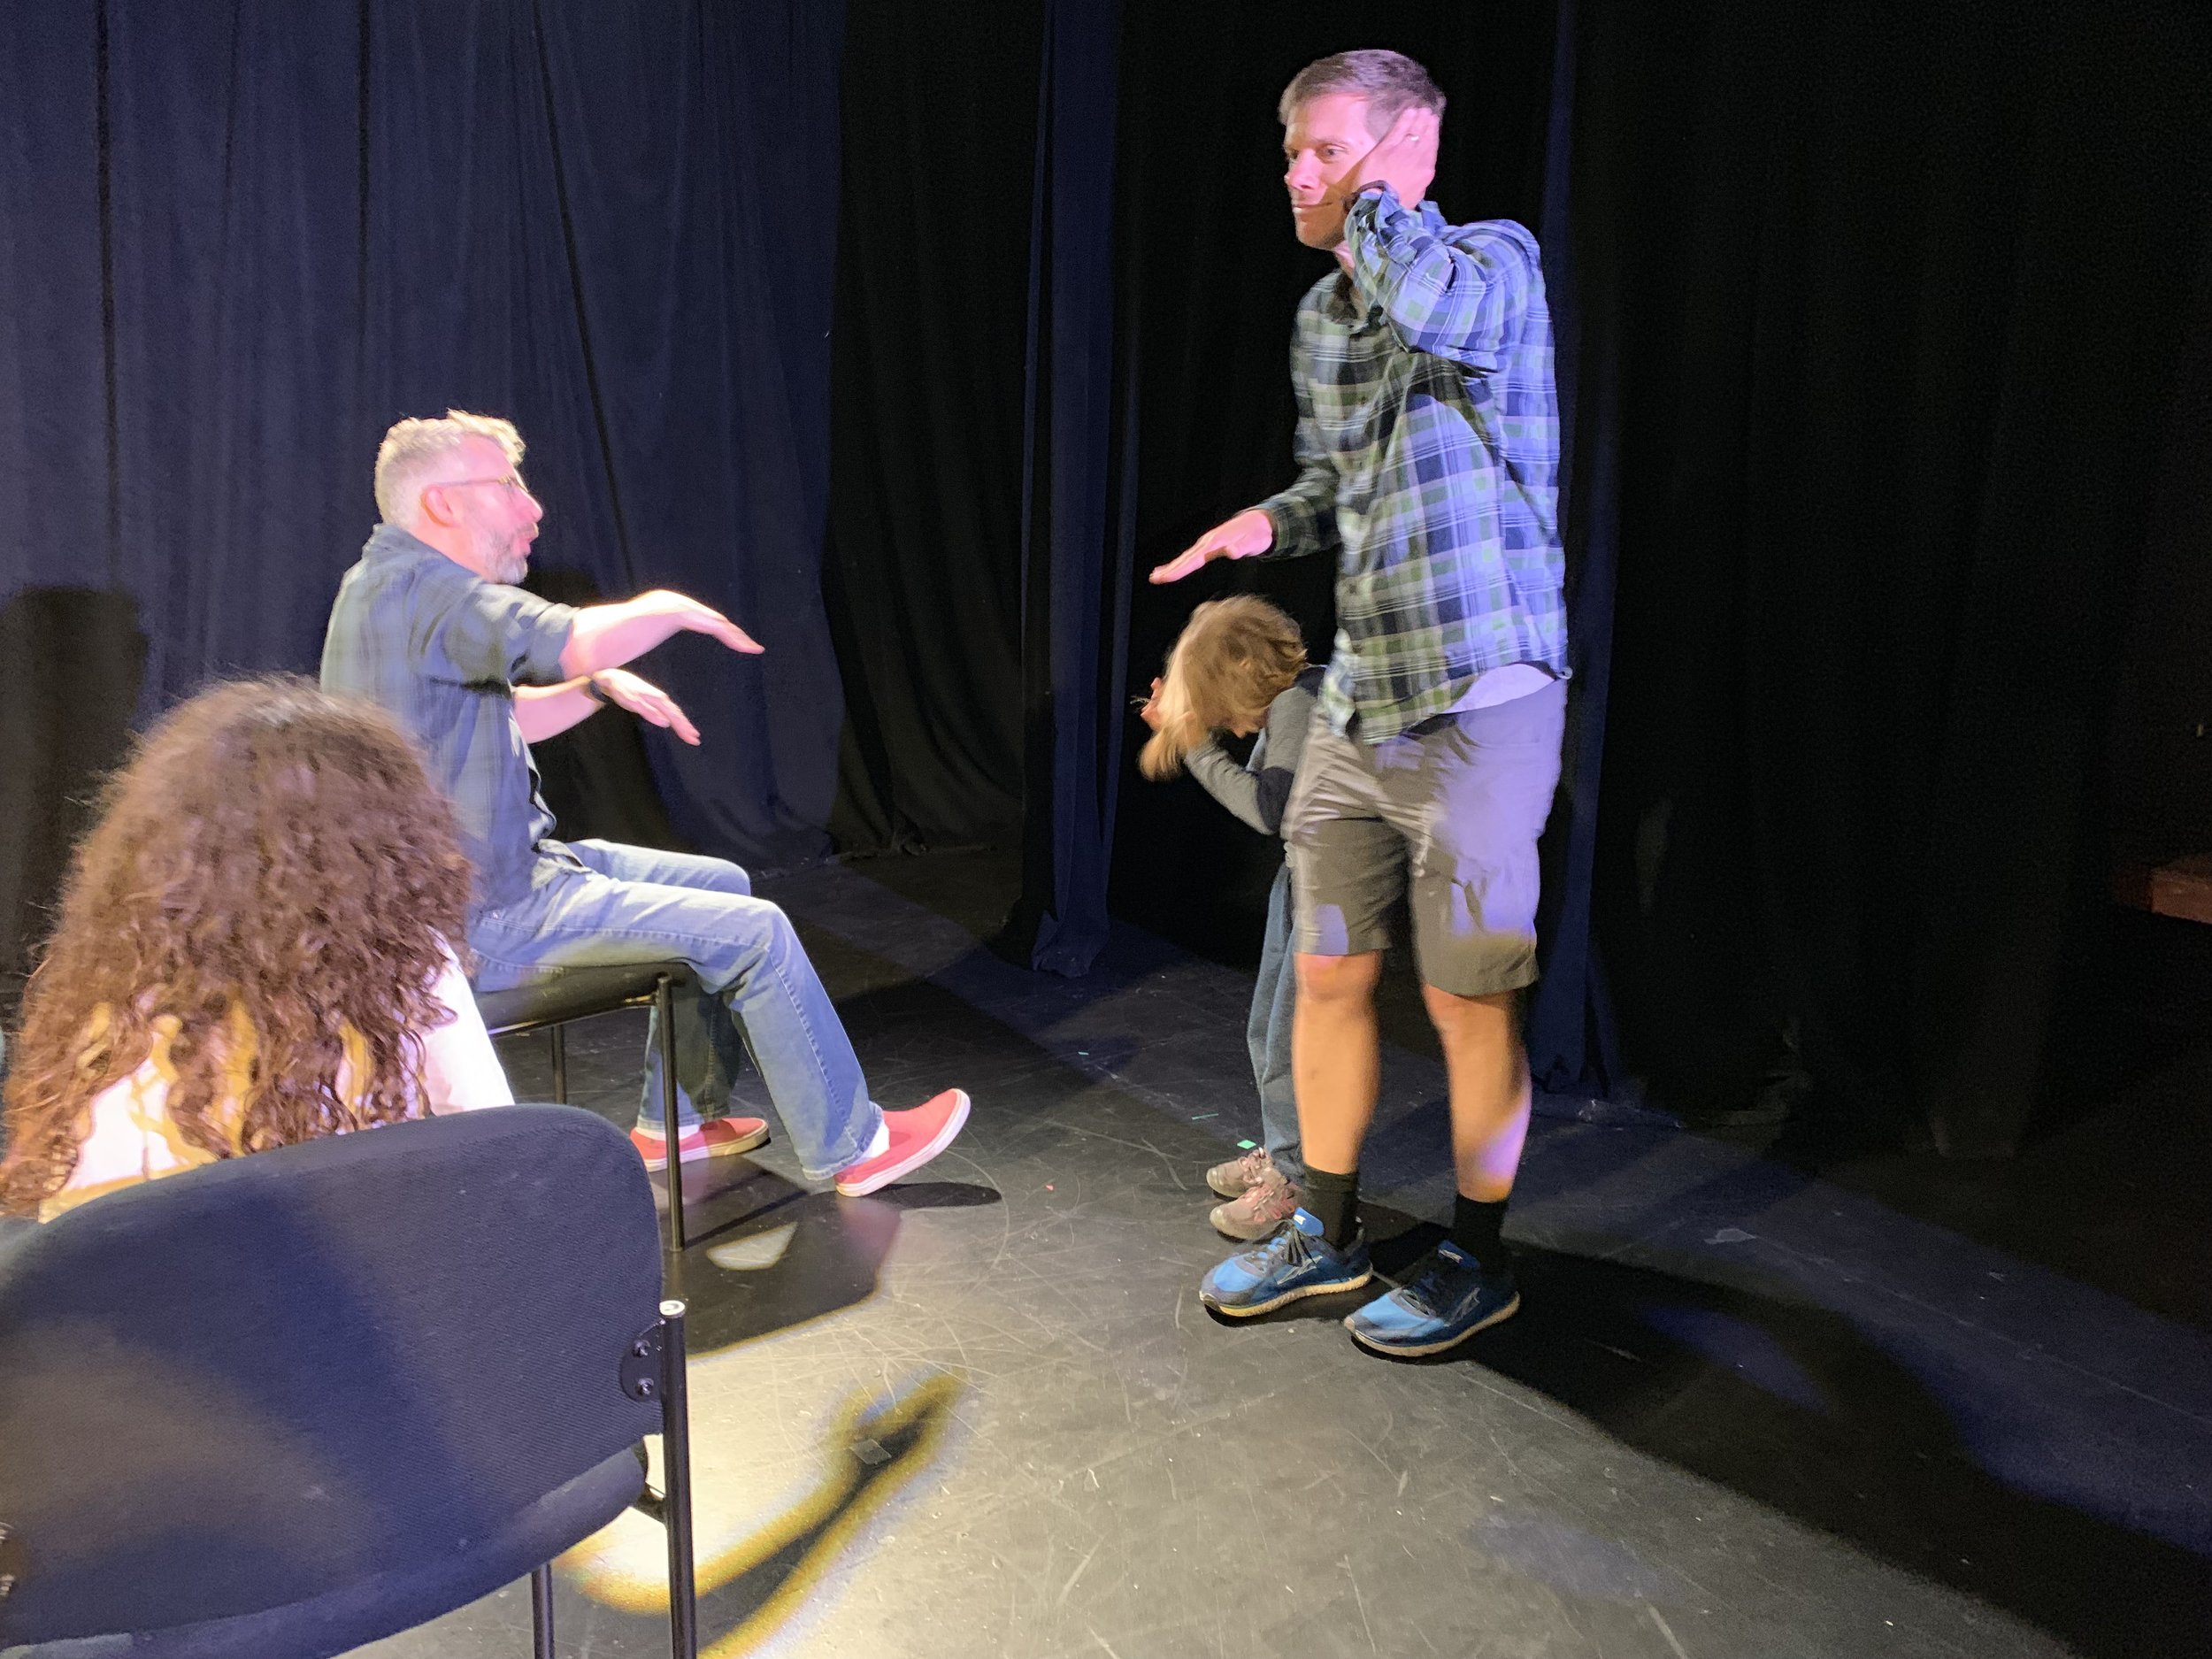 Playlabs - Playful improv workshops for families, offered throughout the Twin Cities.